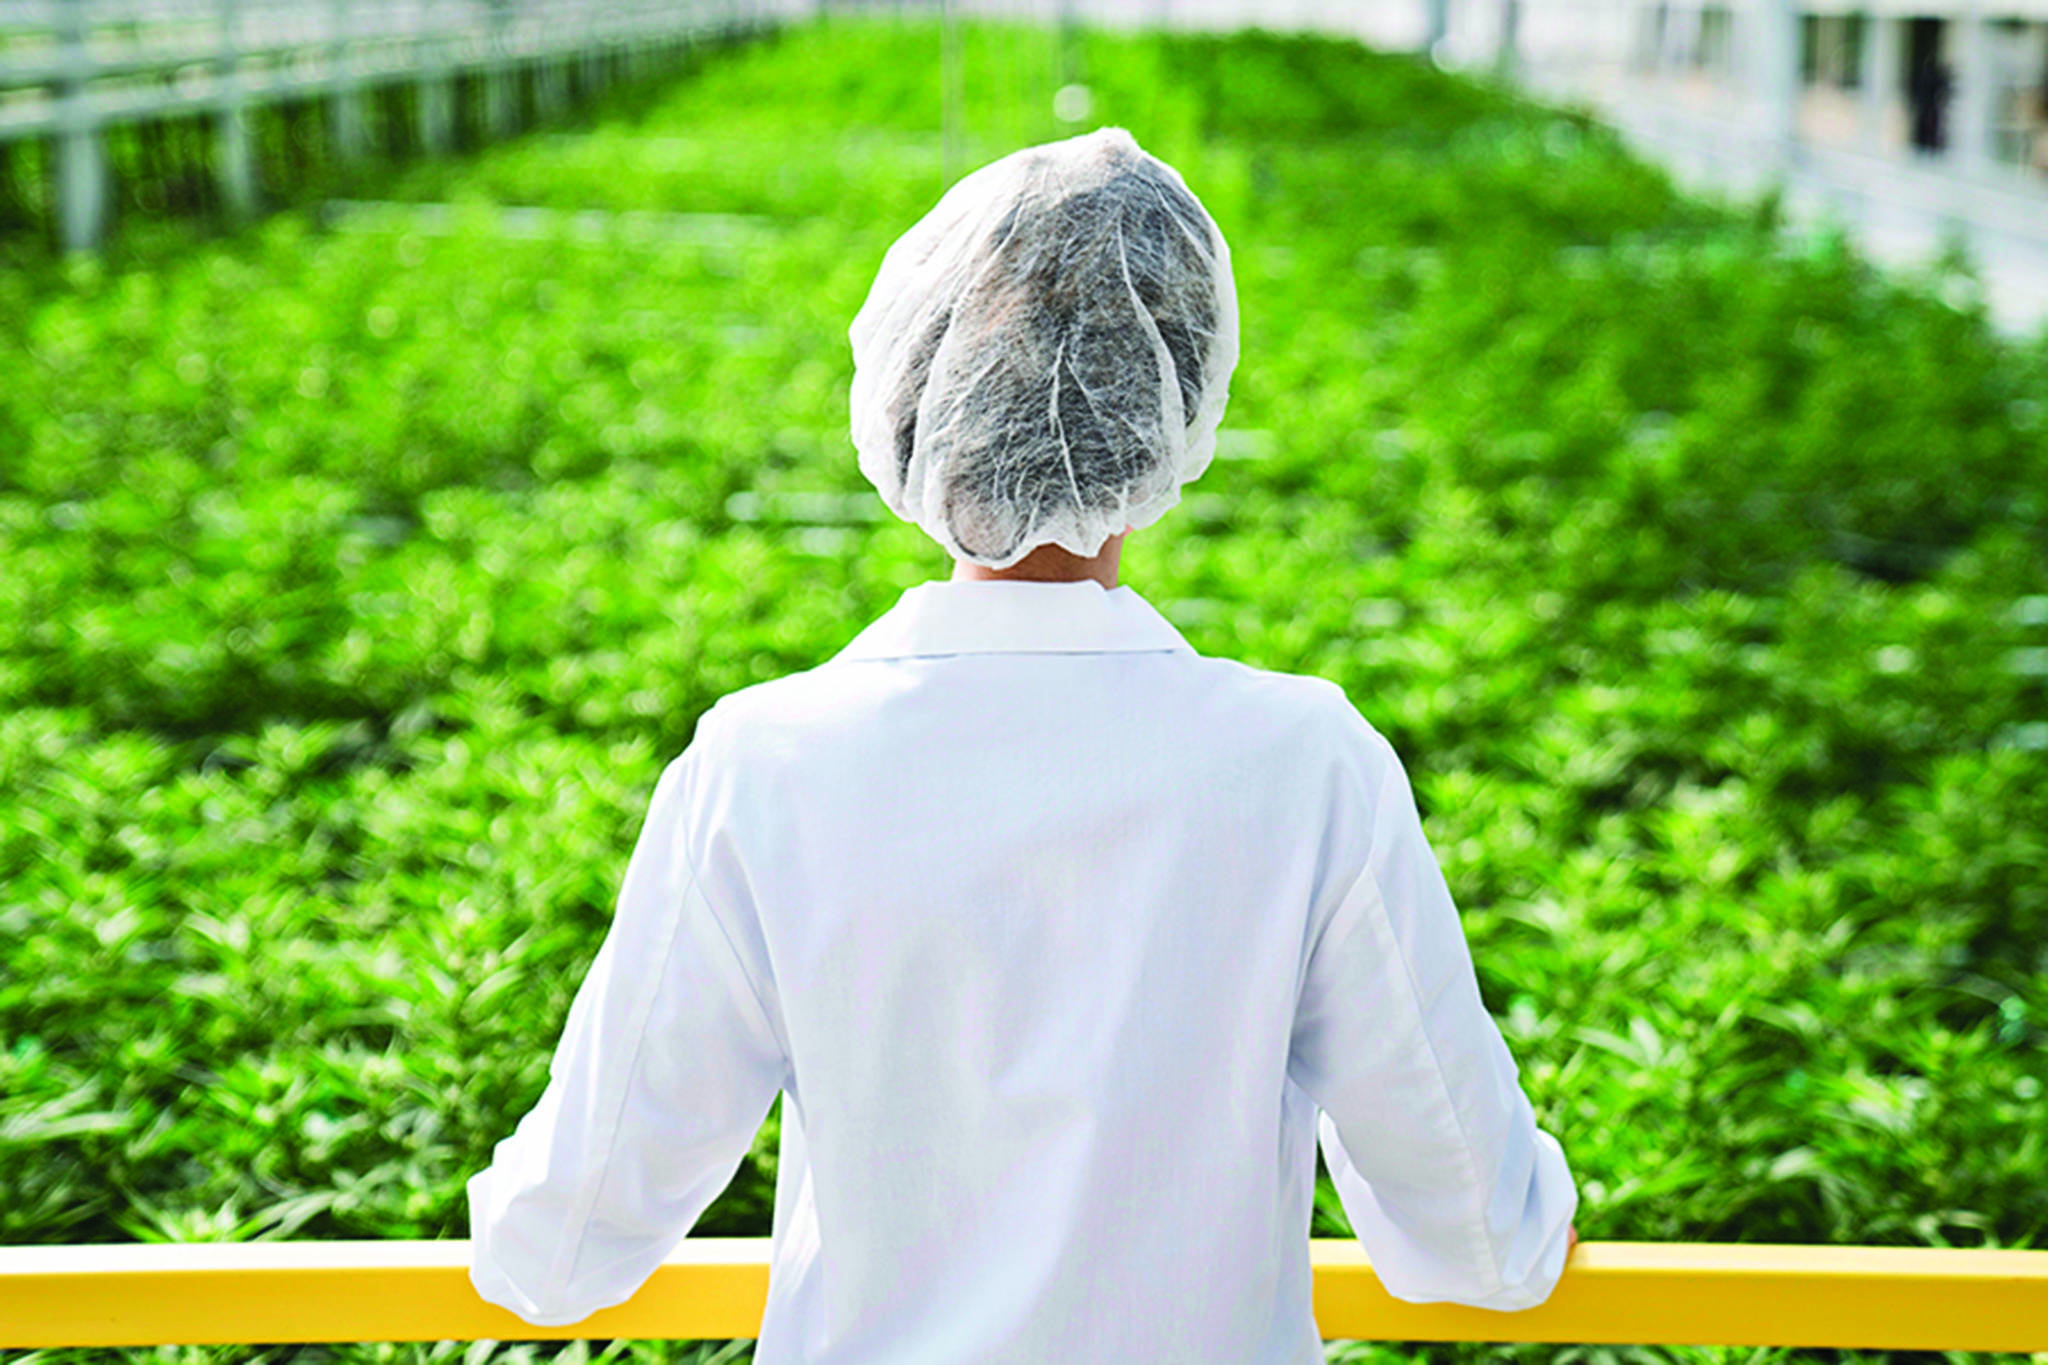 An Aphria worker looks out over a crop of marijuana. Aphria is a Health Canada licensed producer of medical cannabis products. Medical marijuana will be one of three topics covered at the women's health forum. (HO-Aphria/The Canadian Press)